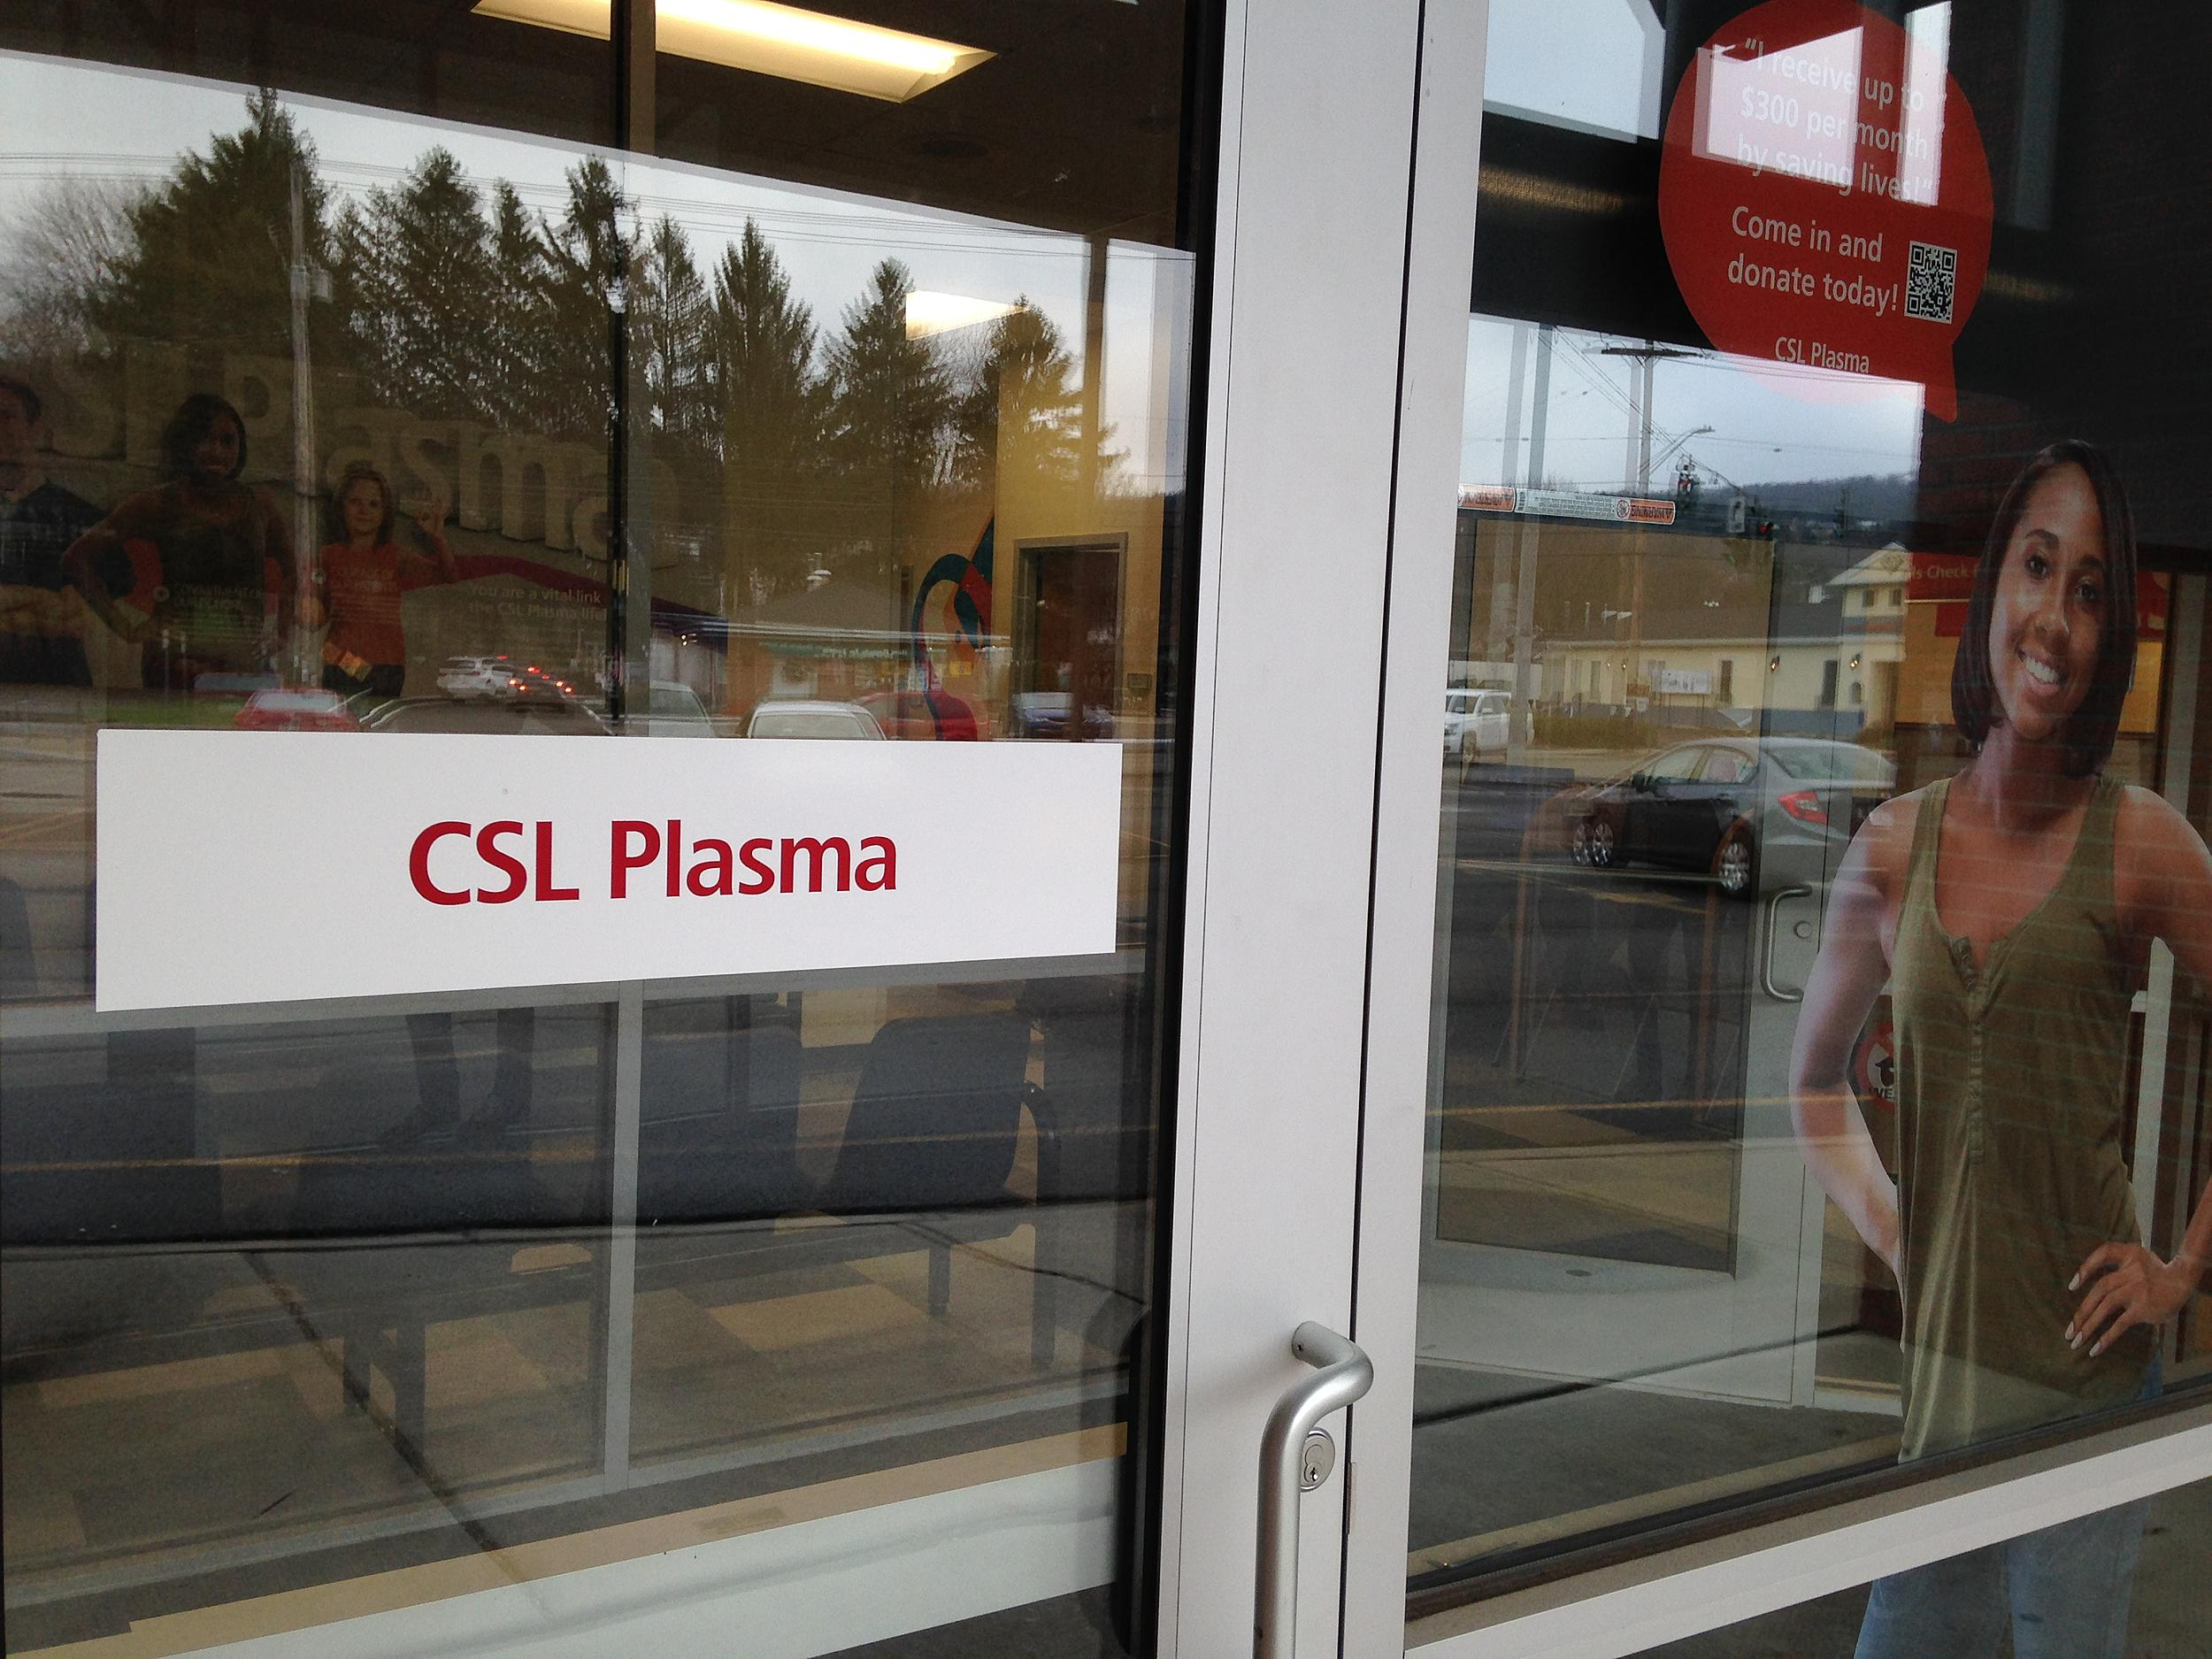 No Opening Date Yet for Endwell Plasma Collection Center